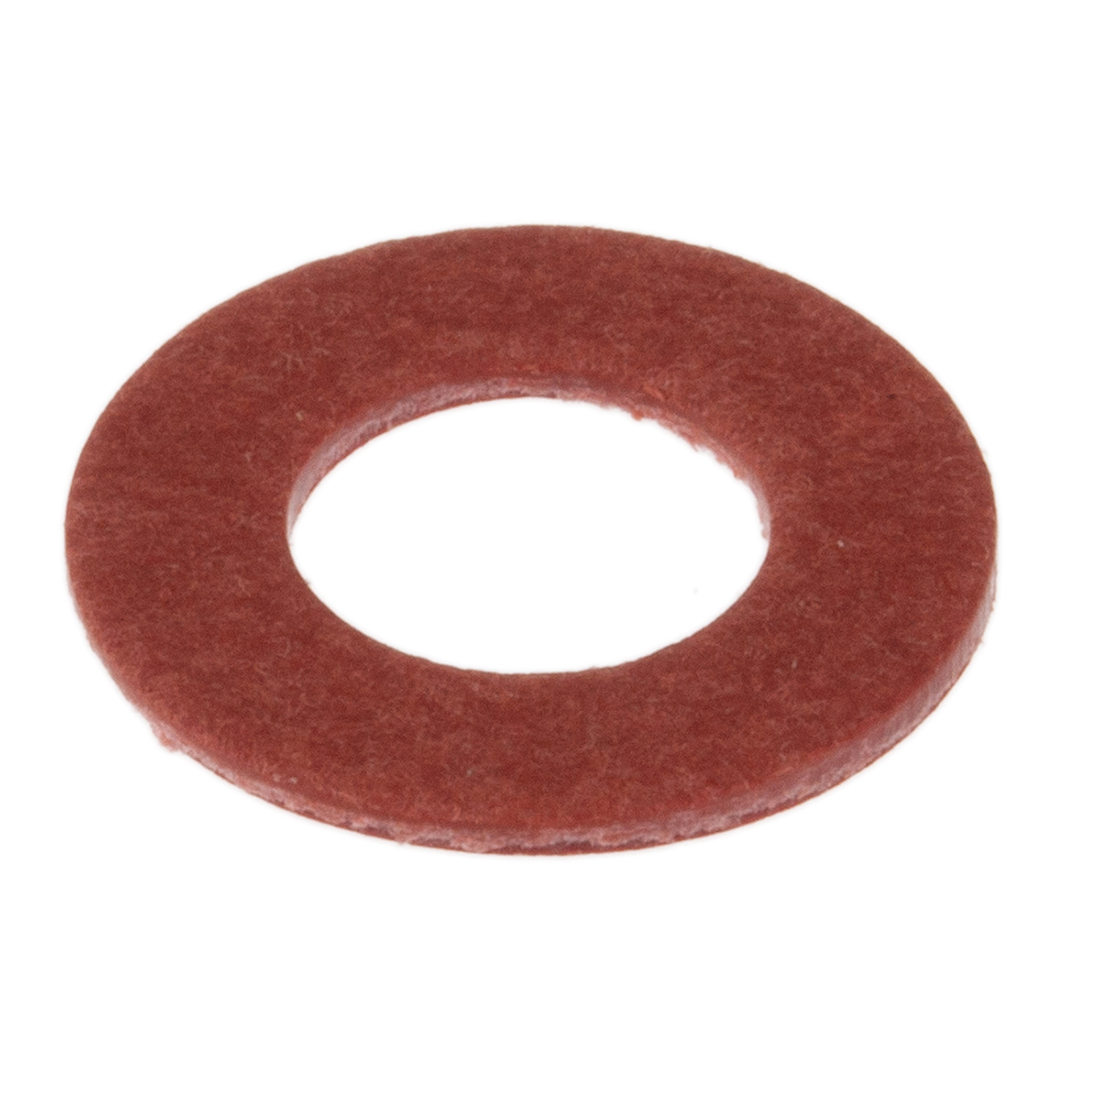 M6 Plain Vulcanised Fibre Tap Washer, 0.8mm Thickness - 250 Pack